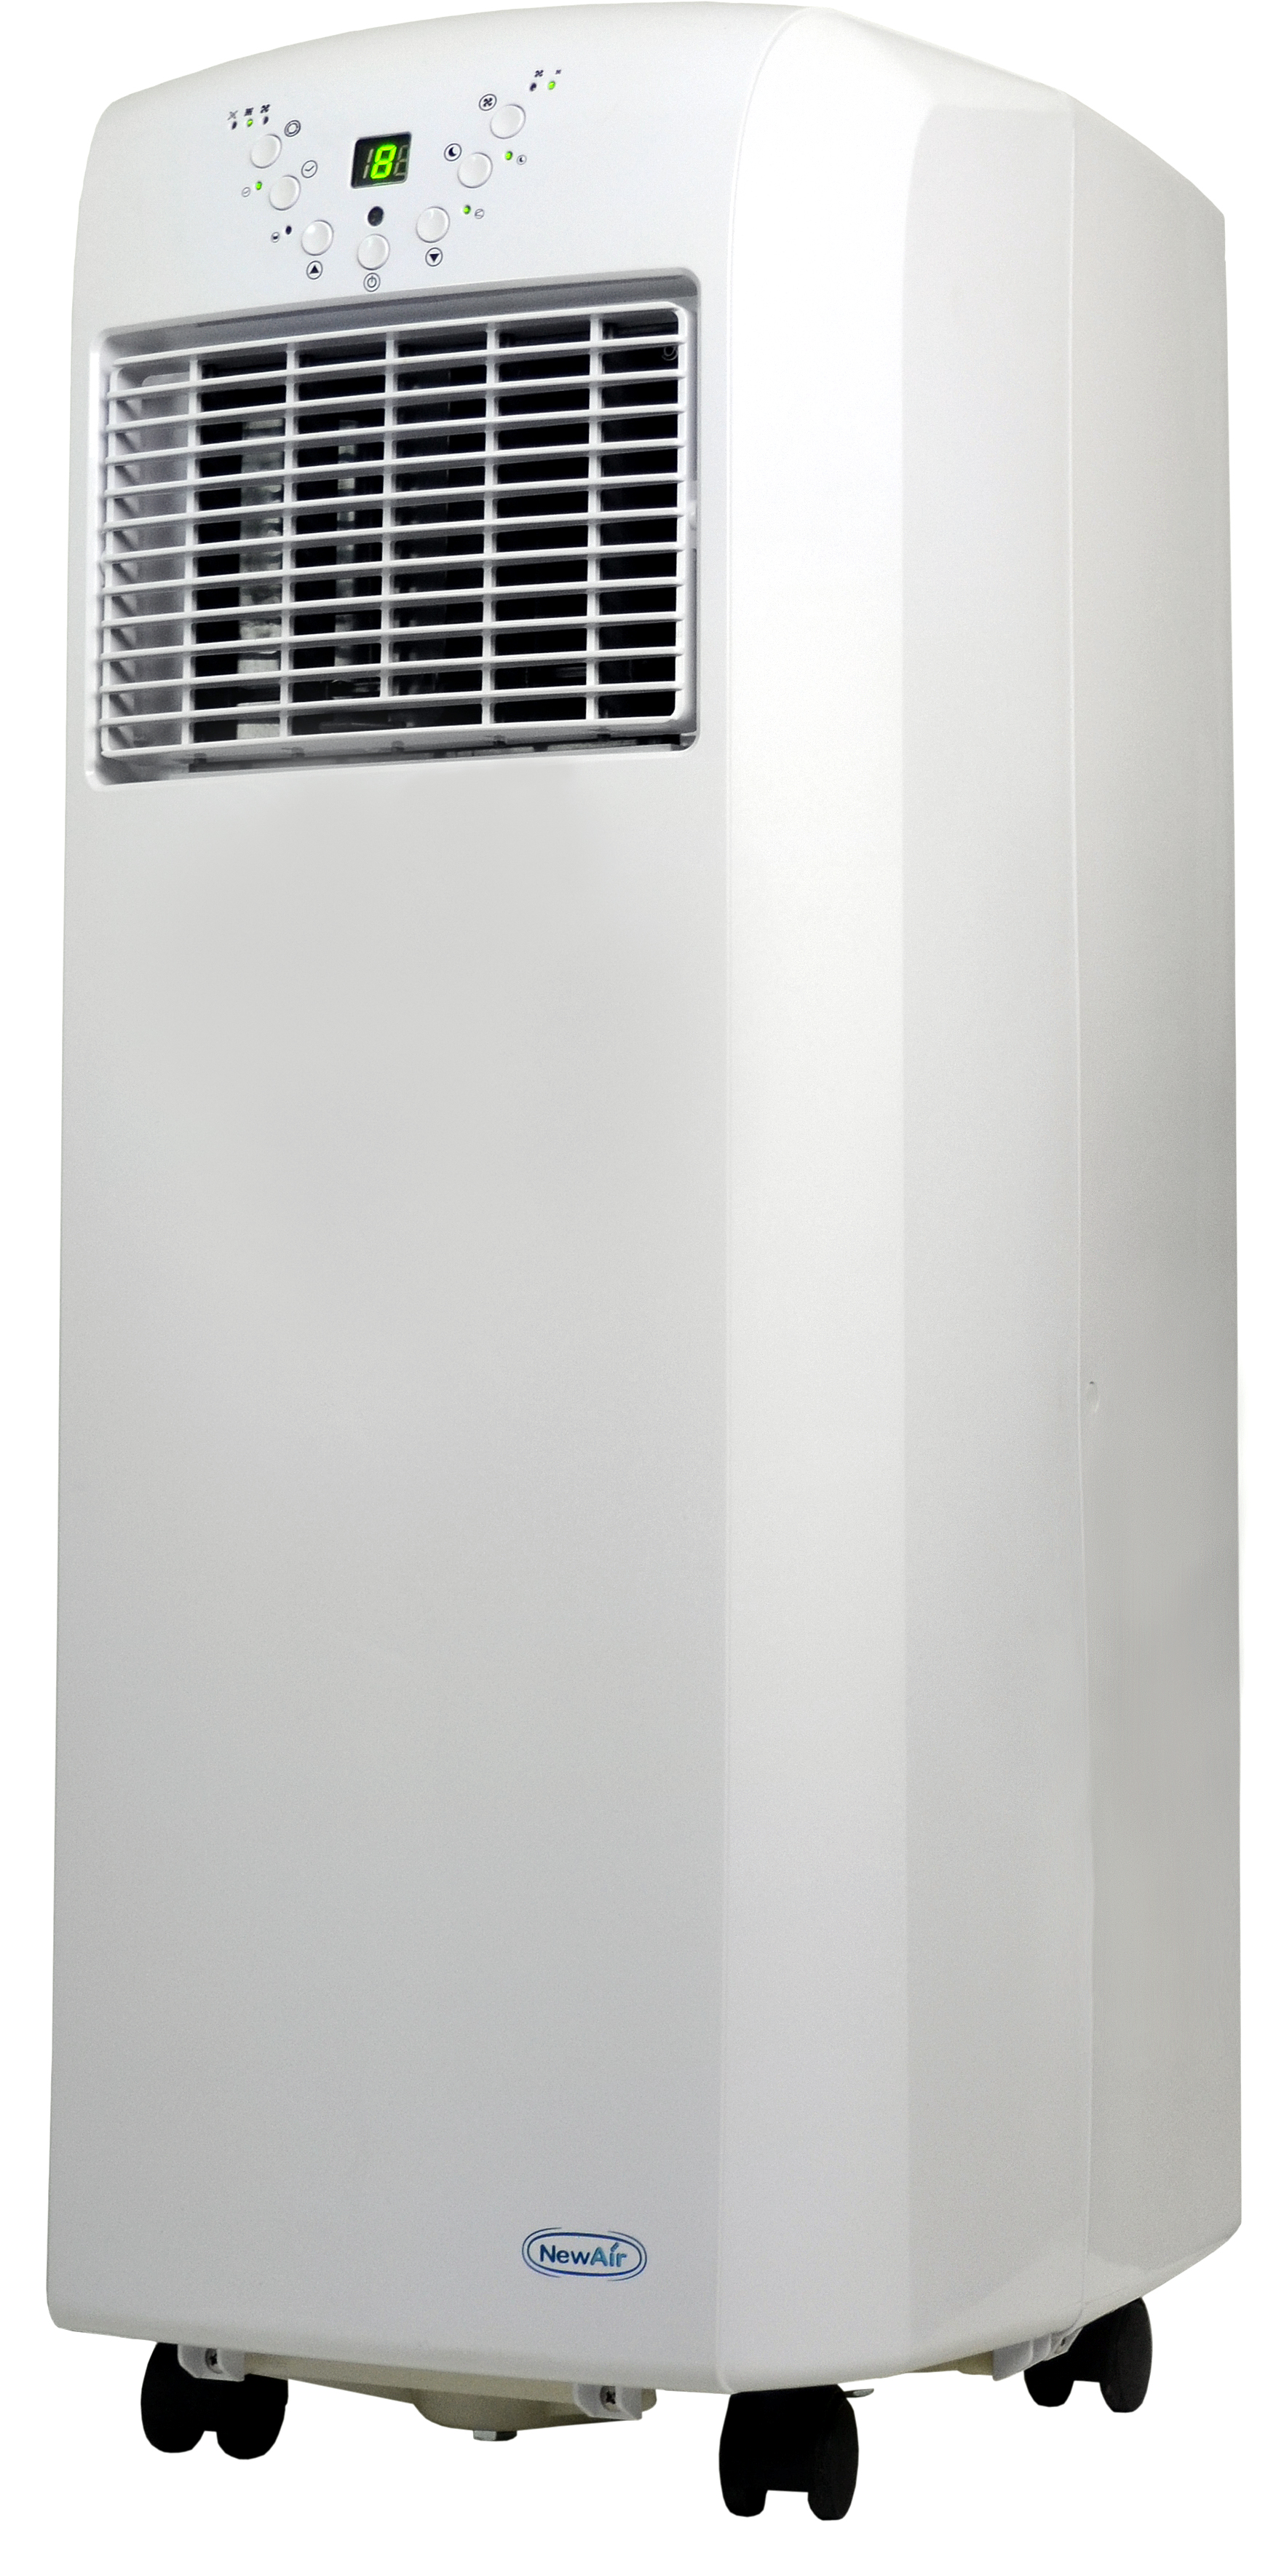 Newair Appliances  Portable UL-Listed Air Conditioner PartNumber: 04201066000P